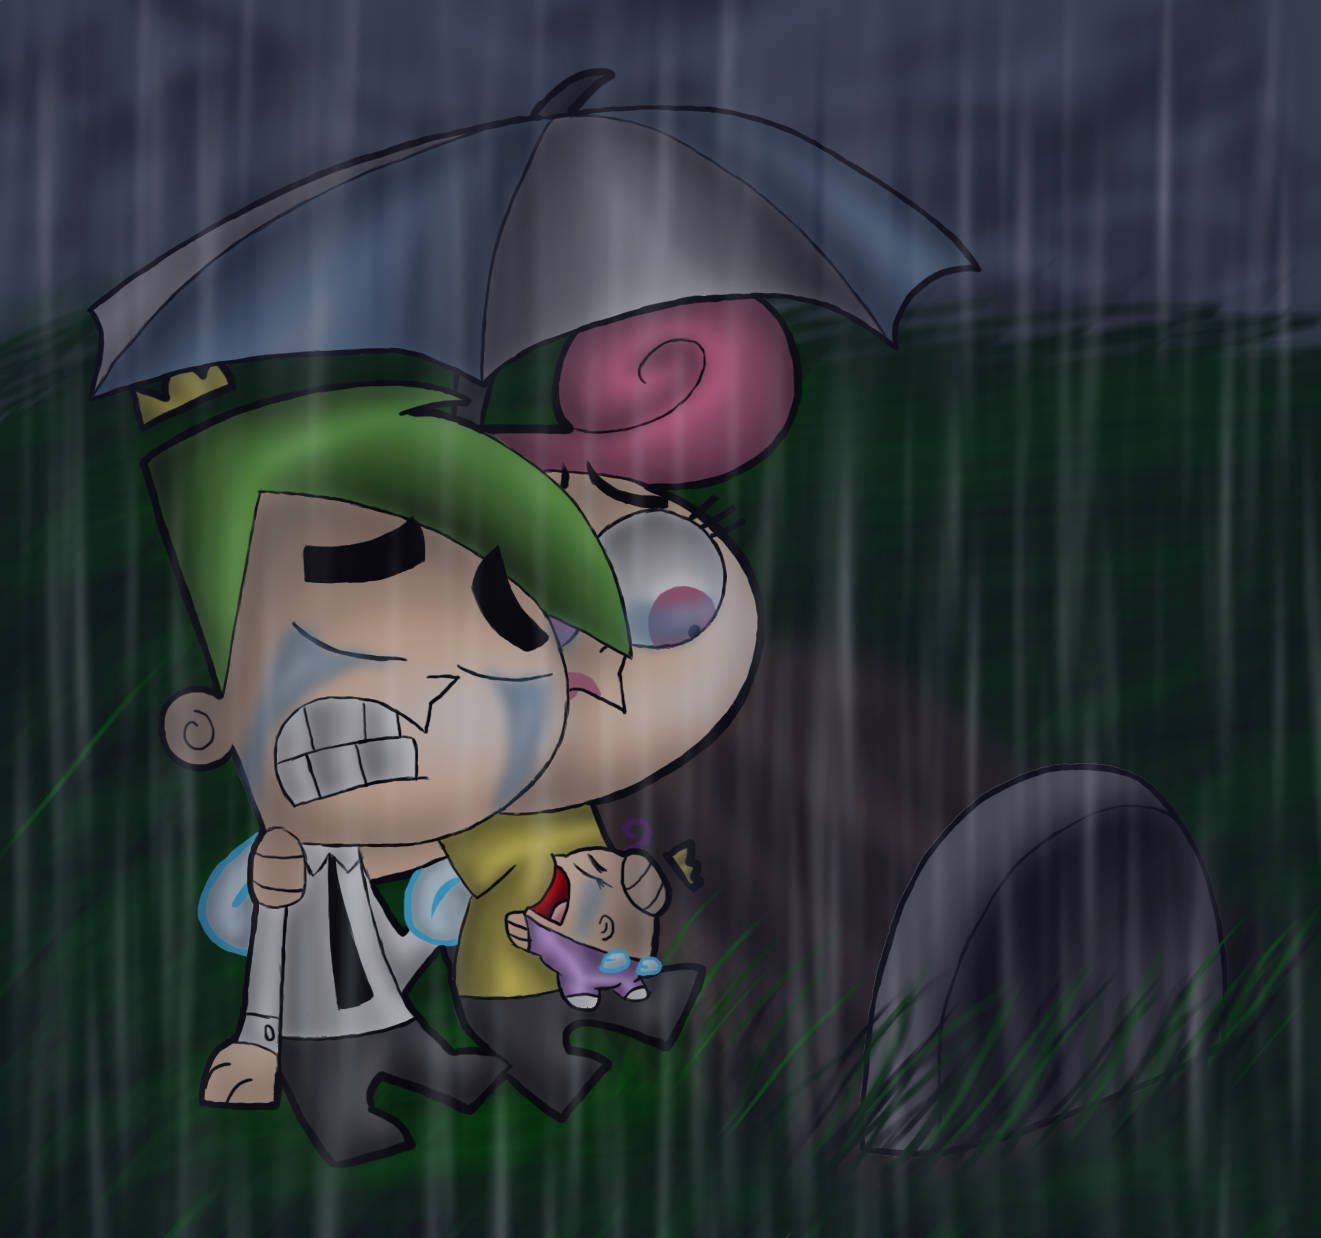 28 Days Of FOP 5 The Death Of Timmy Turner 352633787 on Fairly Odd Parents Wiki Timmy Turner And The